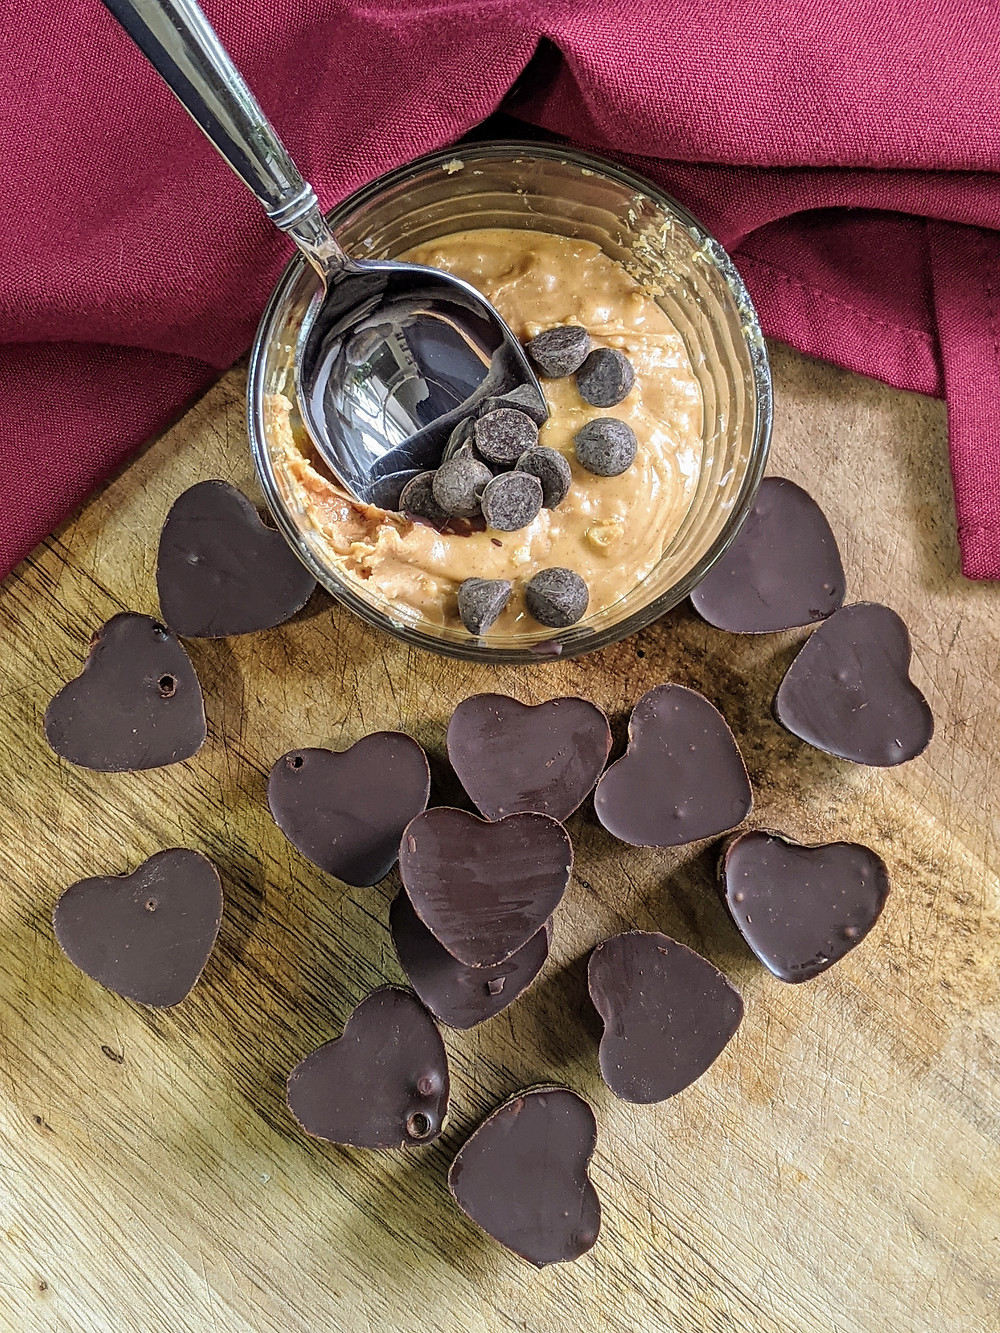 Chocolate Sunbutter Cups Recipe using Enjoy Life's Chocolate - amanda macgregor centineo - food allergy recipes - valentine's day - anniversary - Halloween